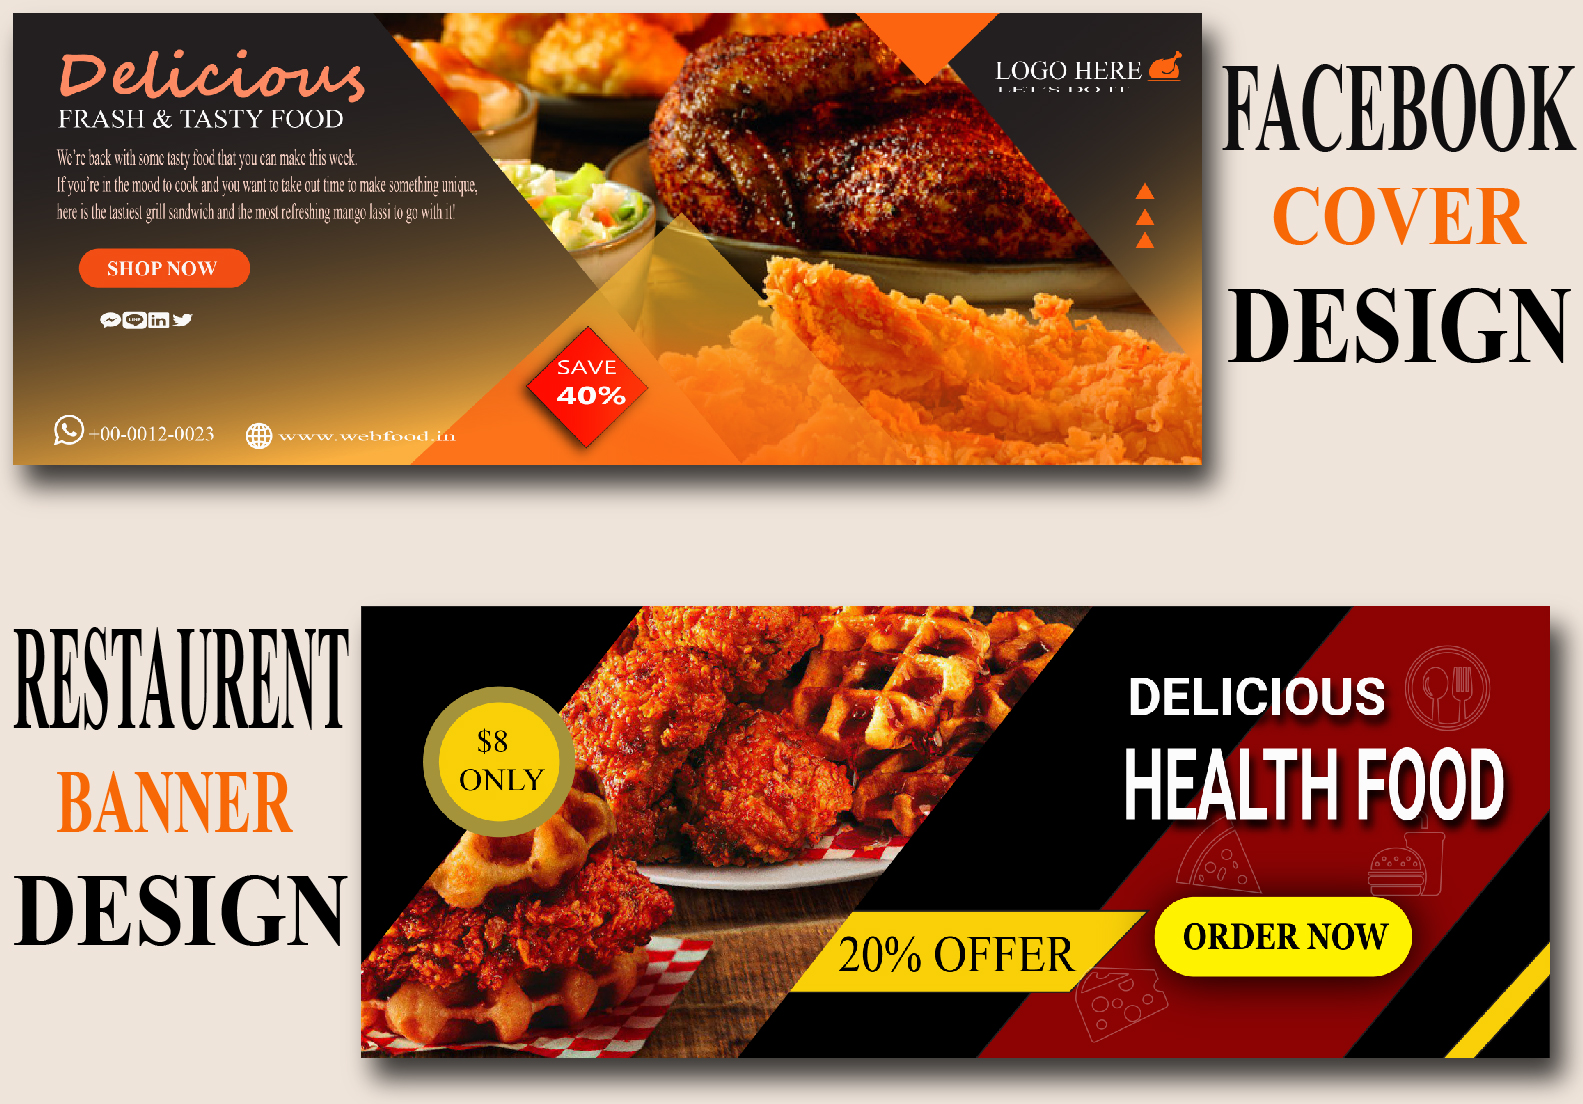 I Will design your Facebook cover or social media Ads